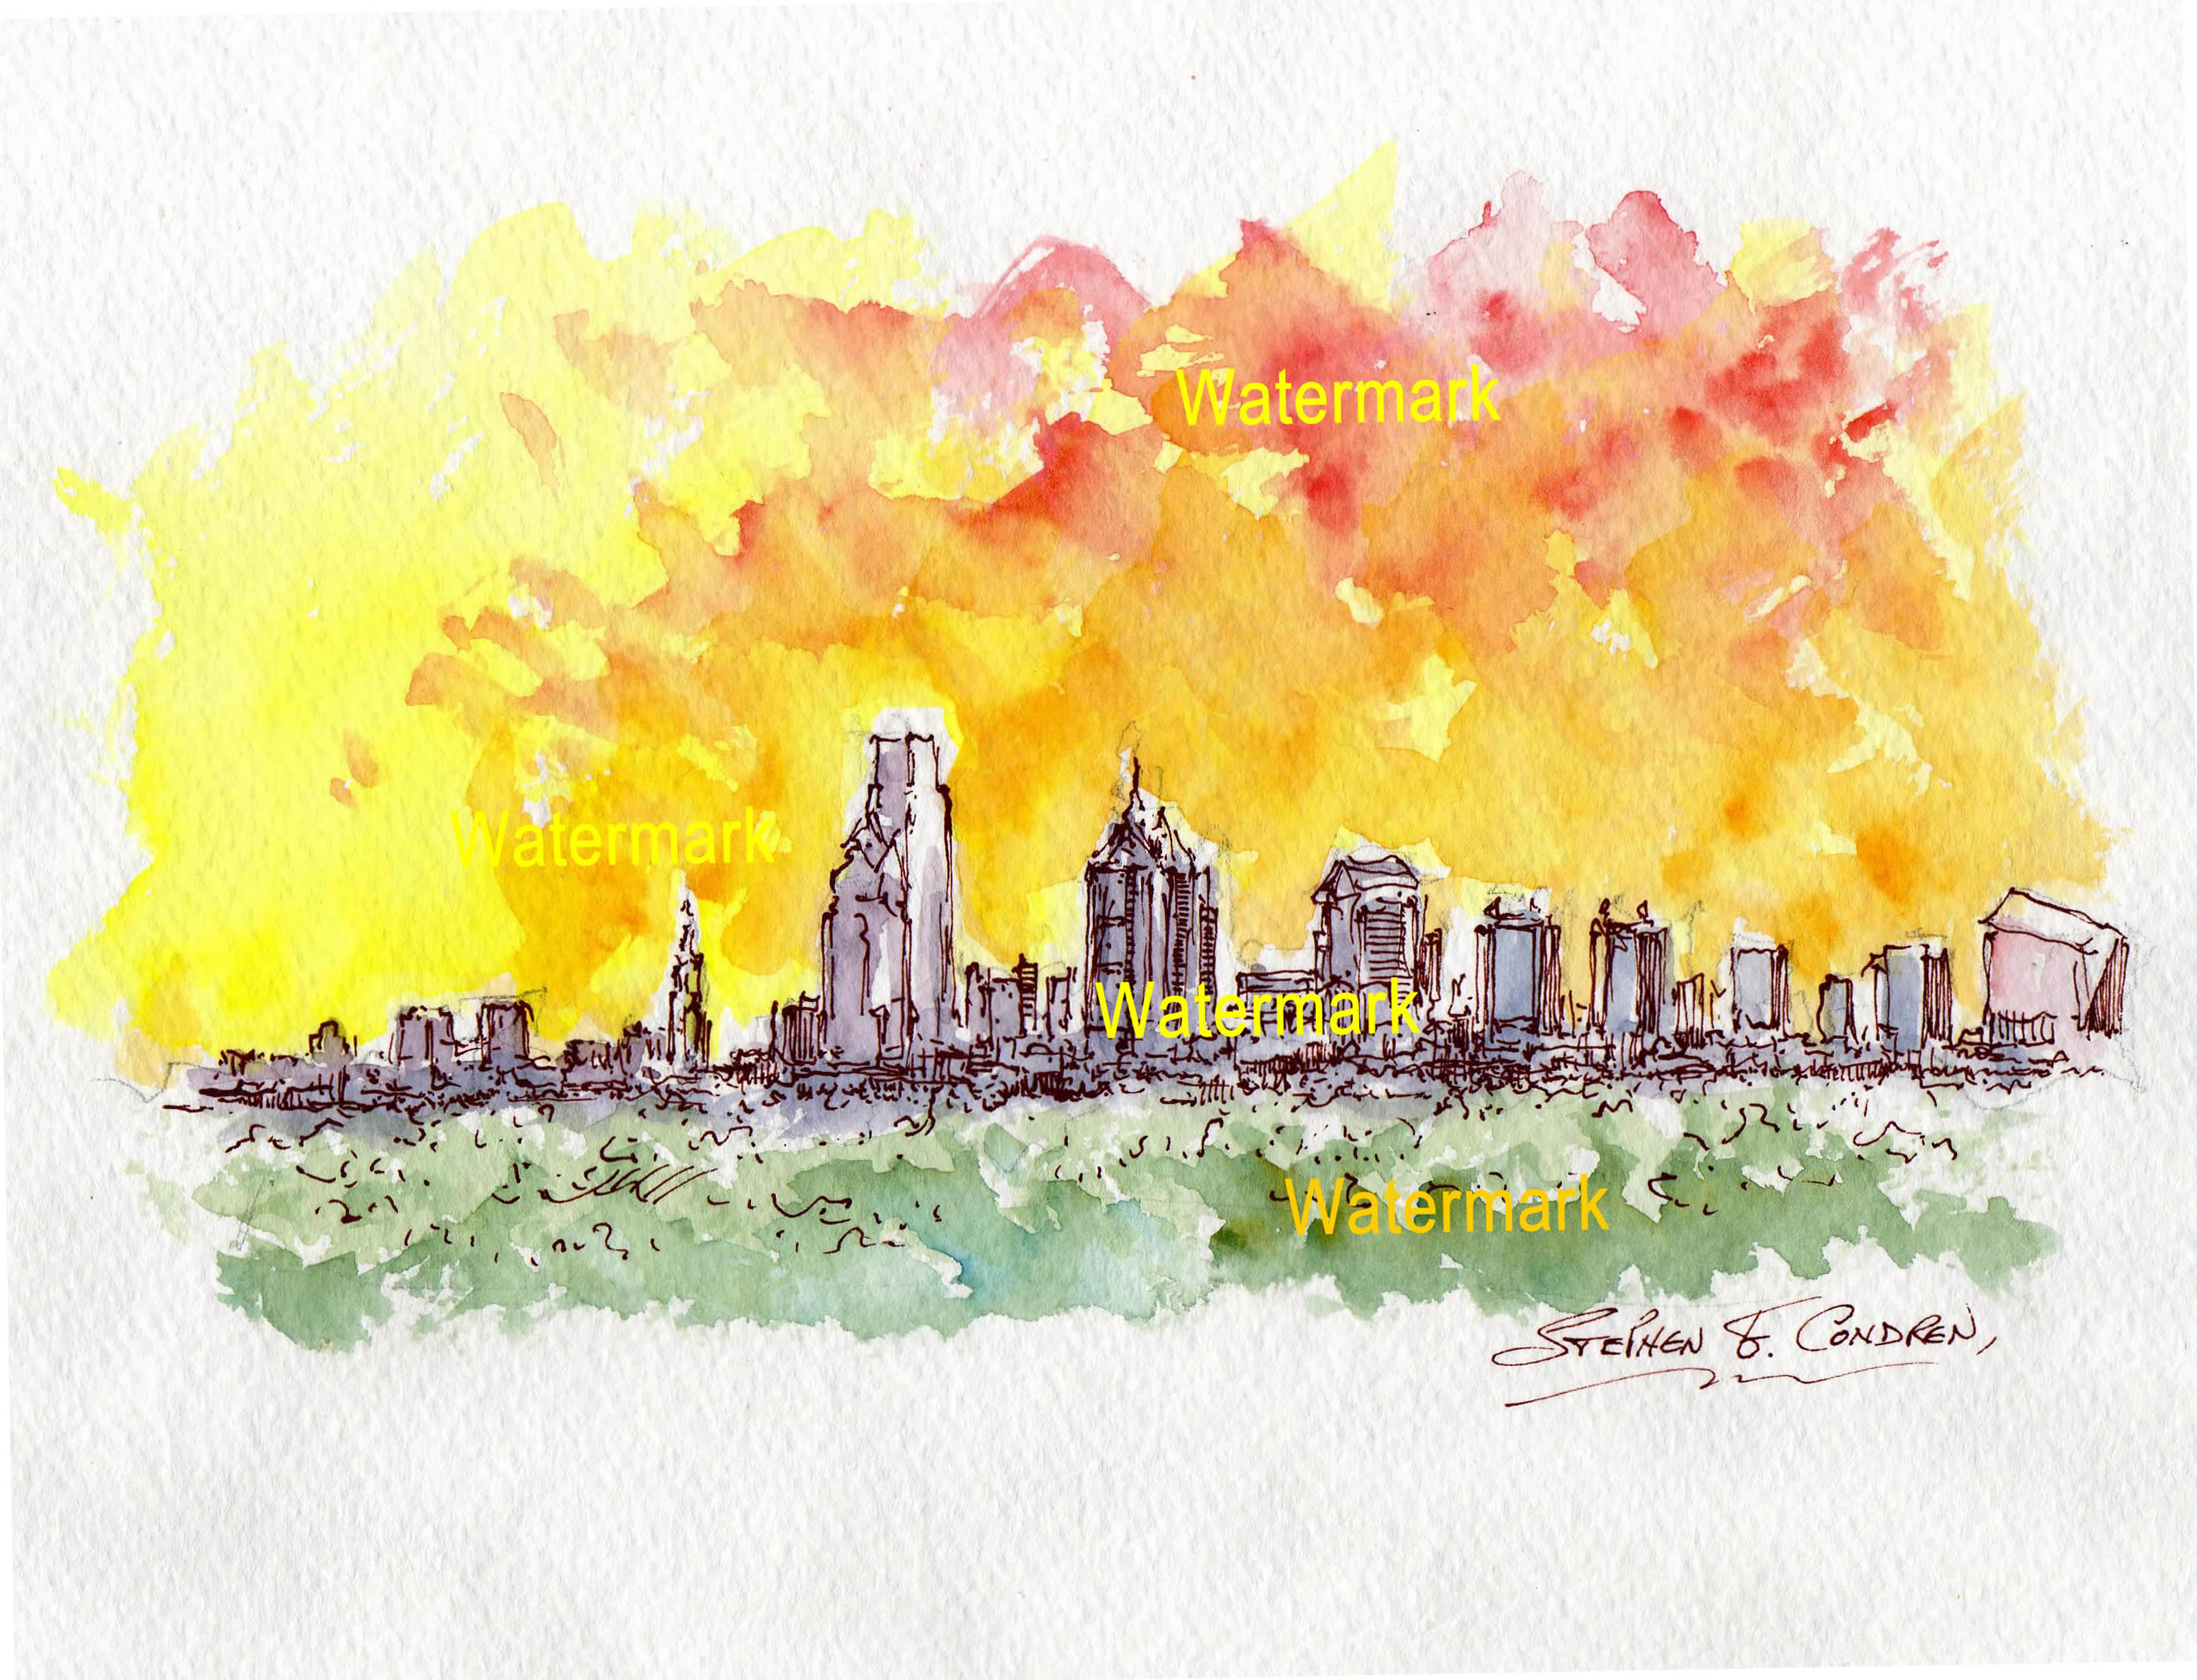 2738x2094 Philadelphia Sunset Watercolors And Prints Condren Galleries Ltd.